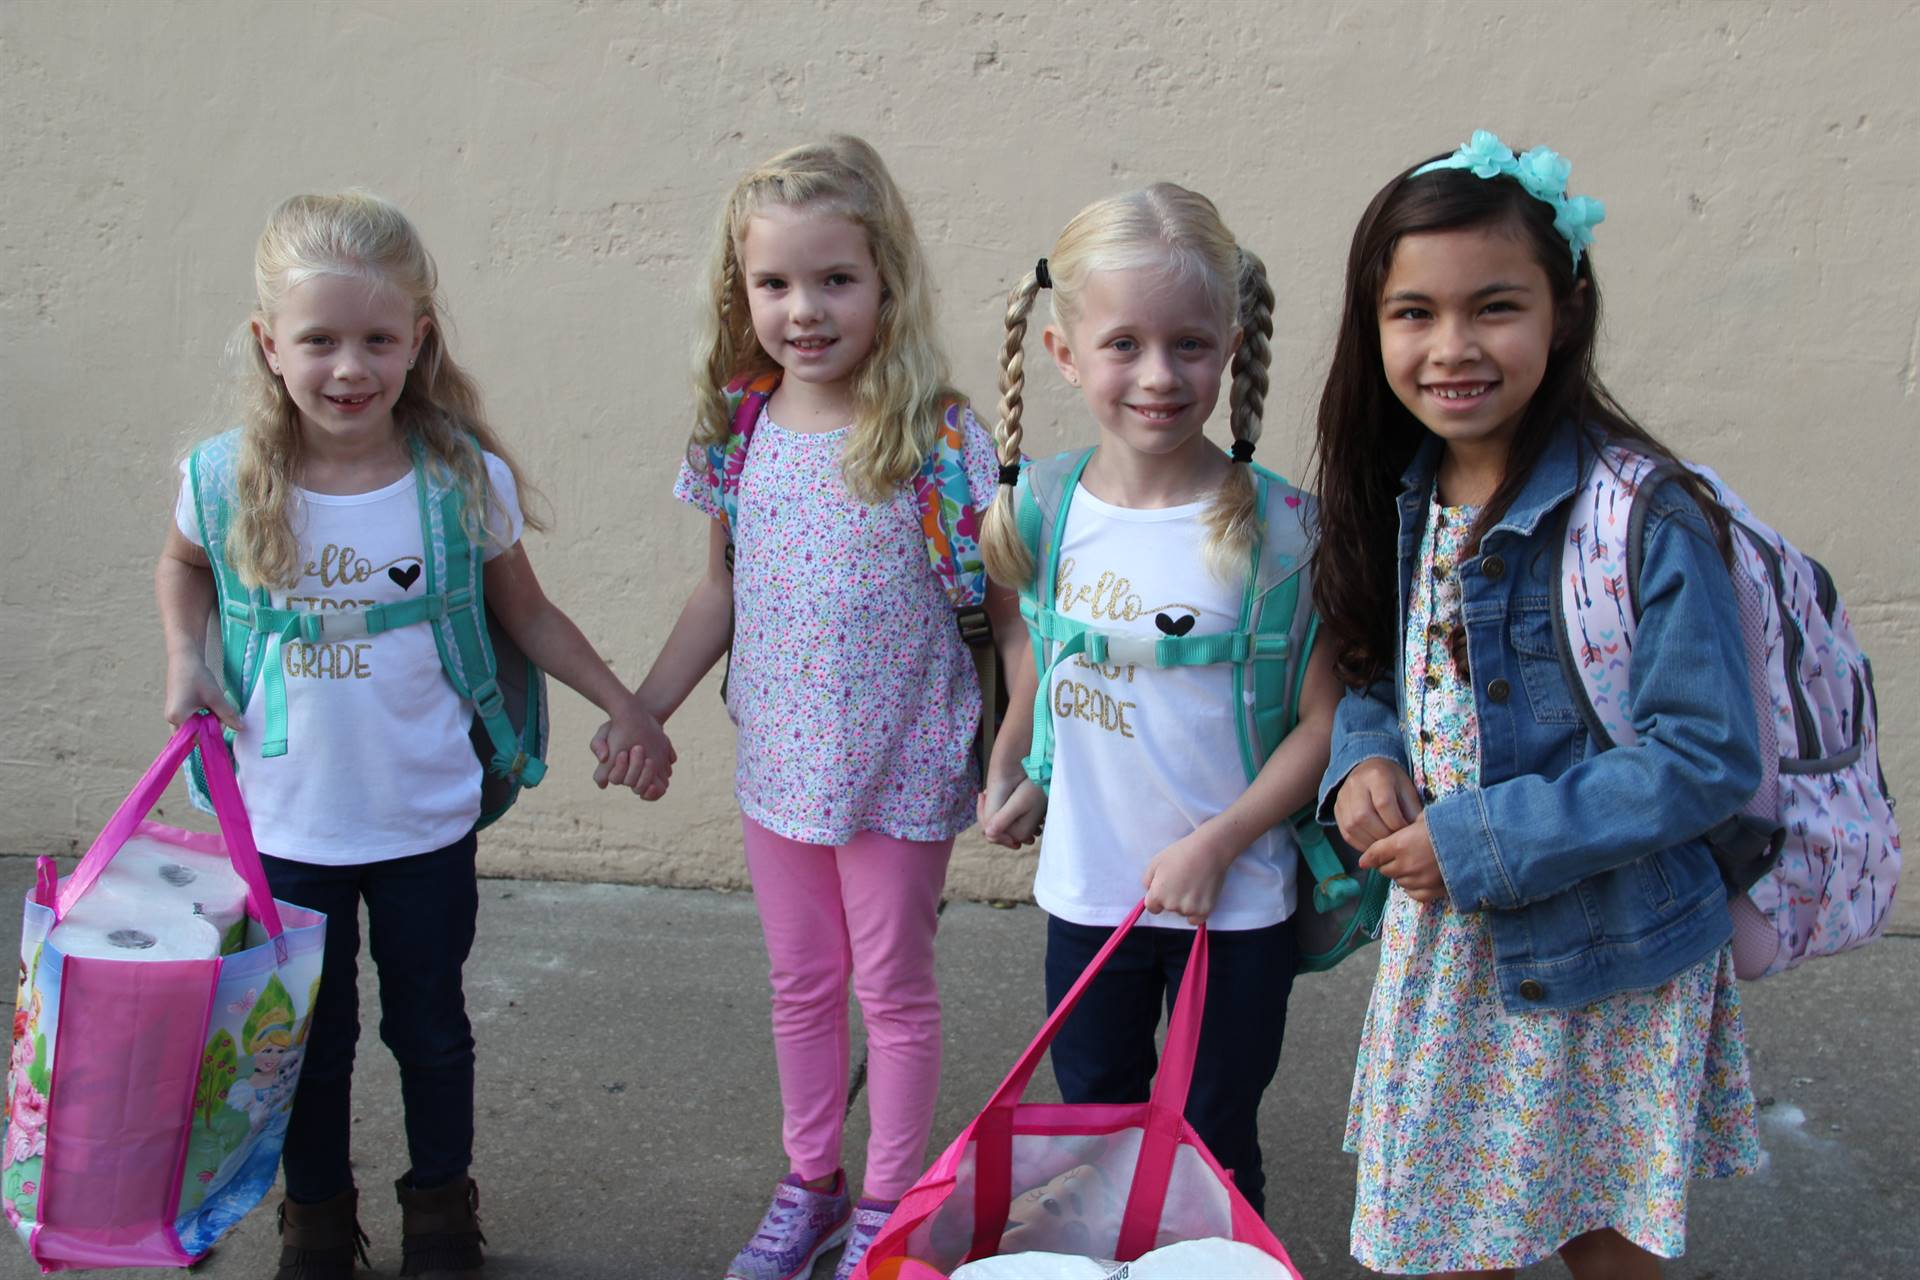 four girl students smile on first day of school